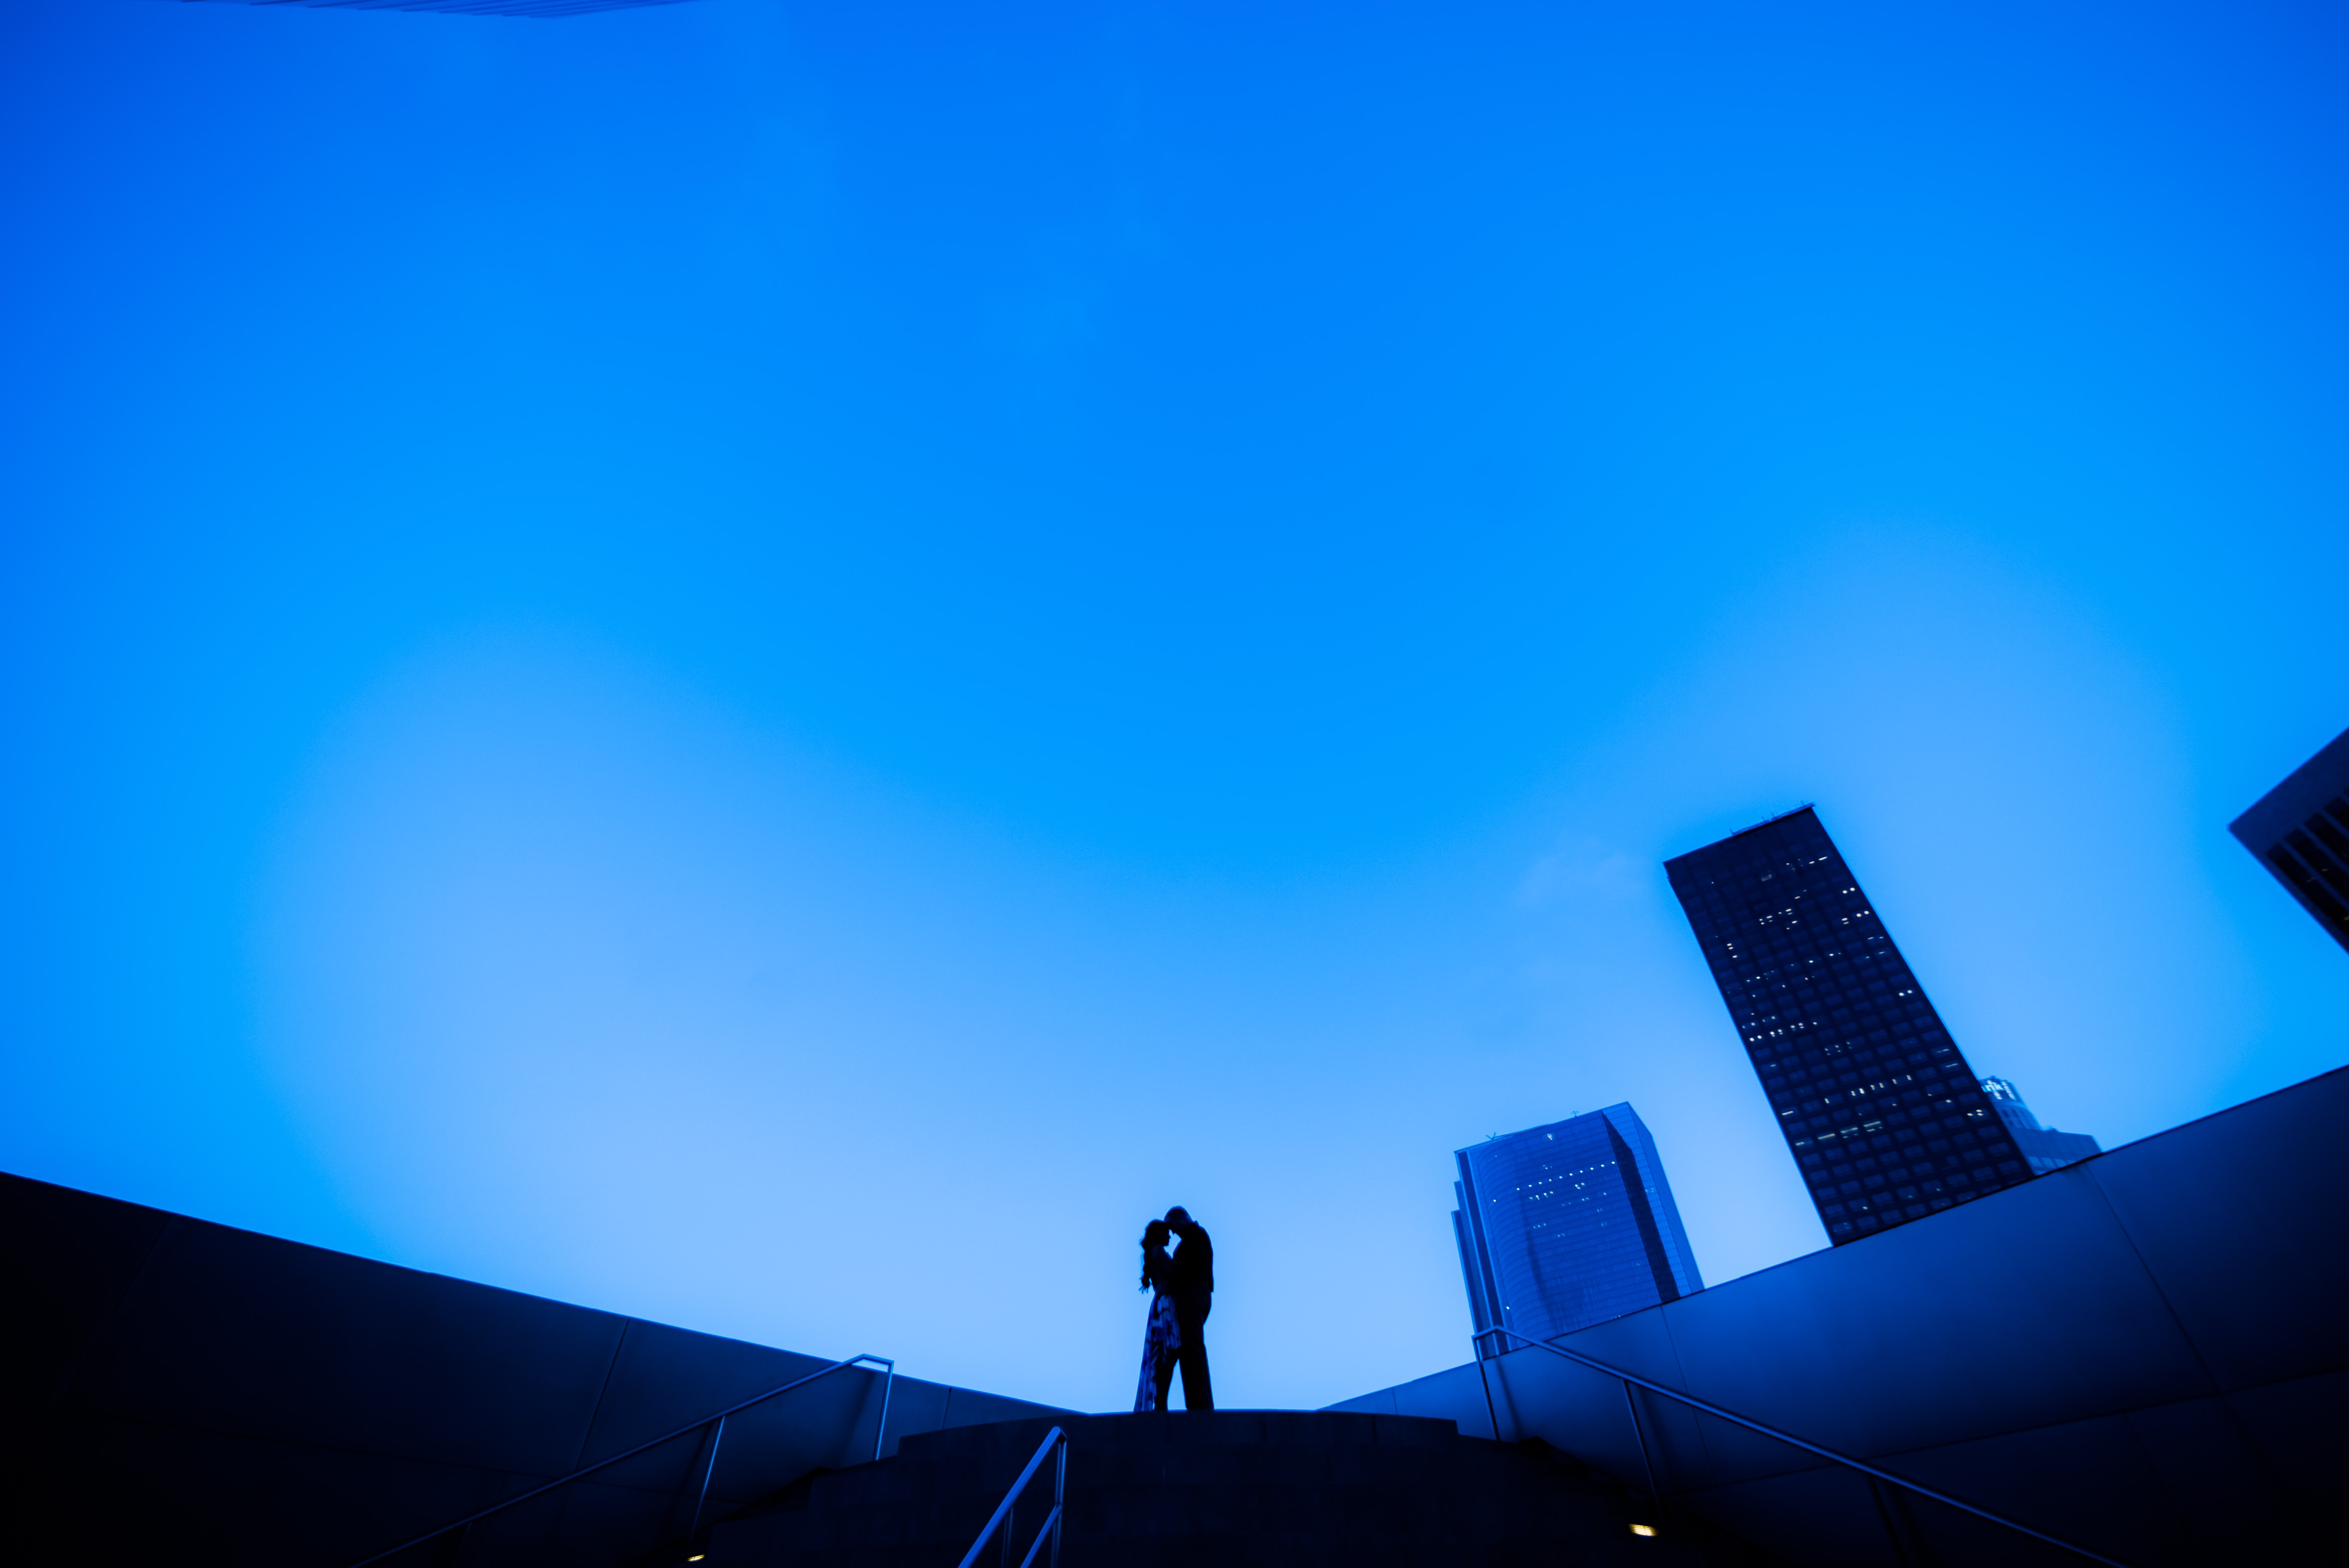 silhouette of two person standing